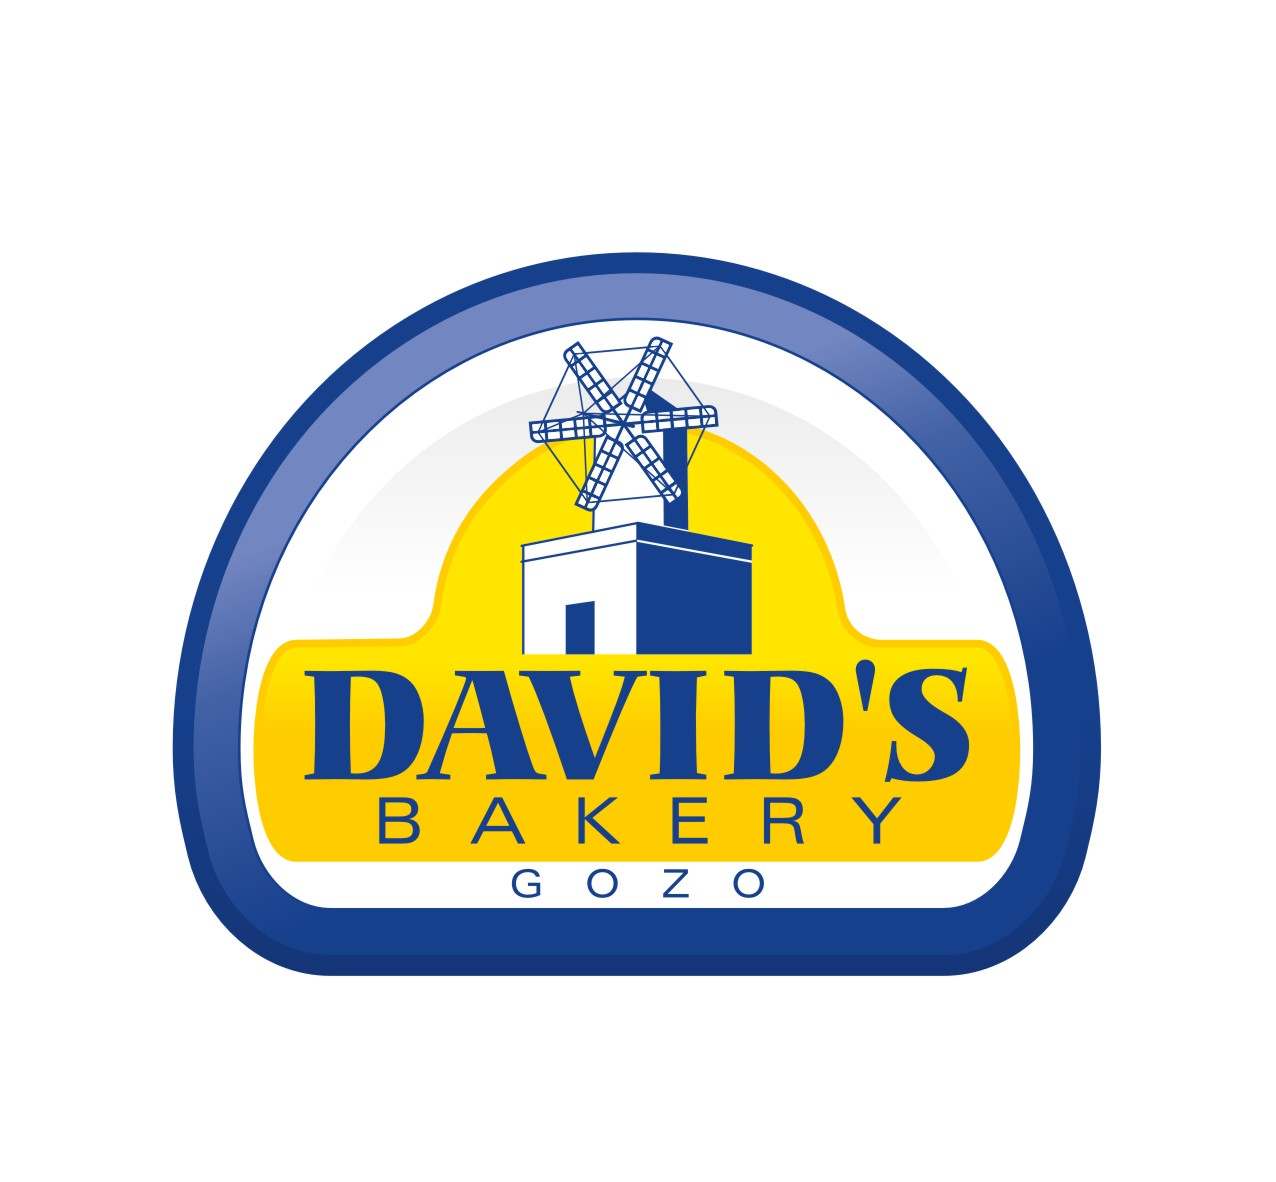 David bakery logo